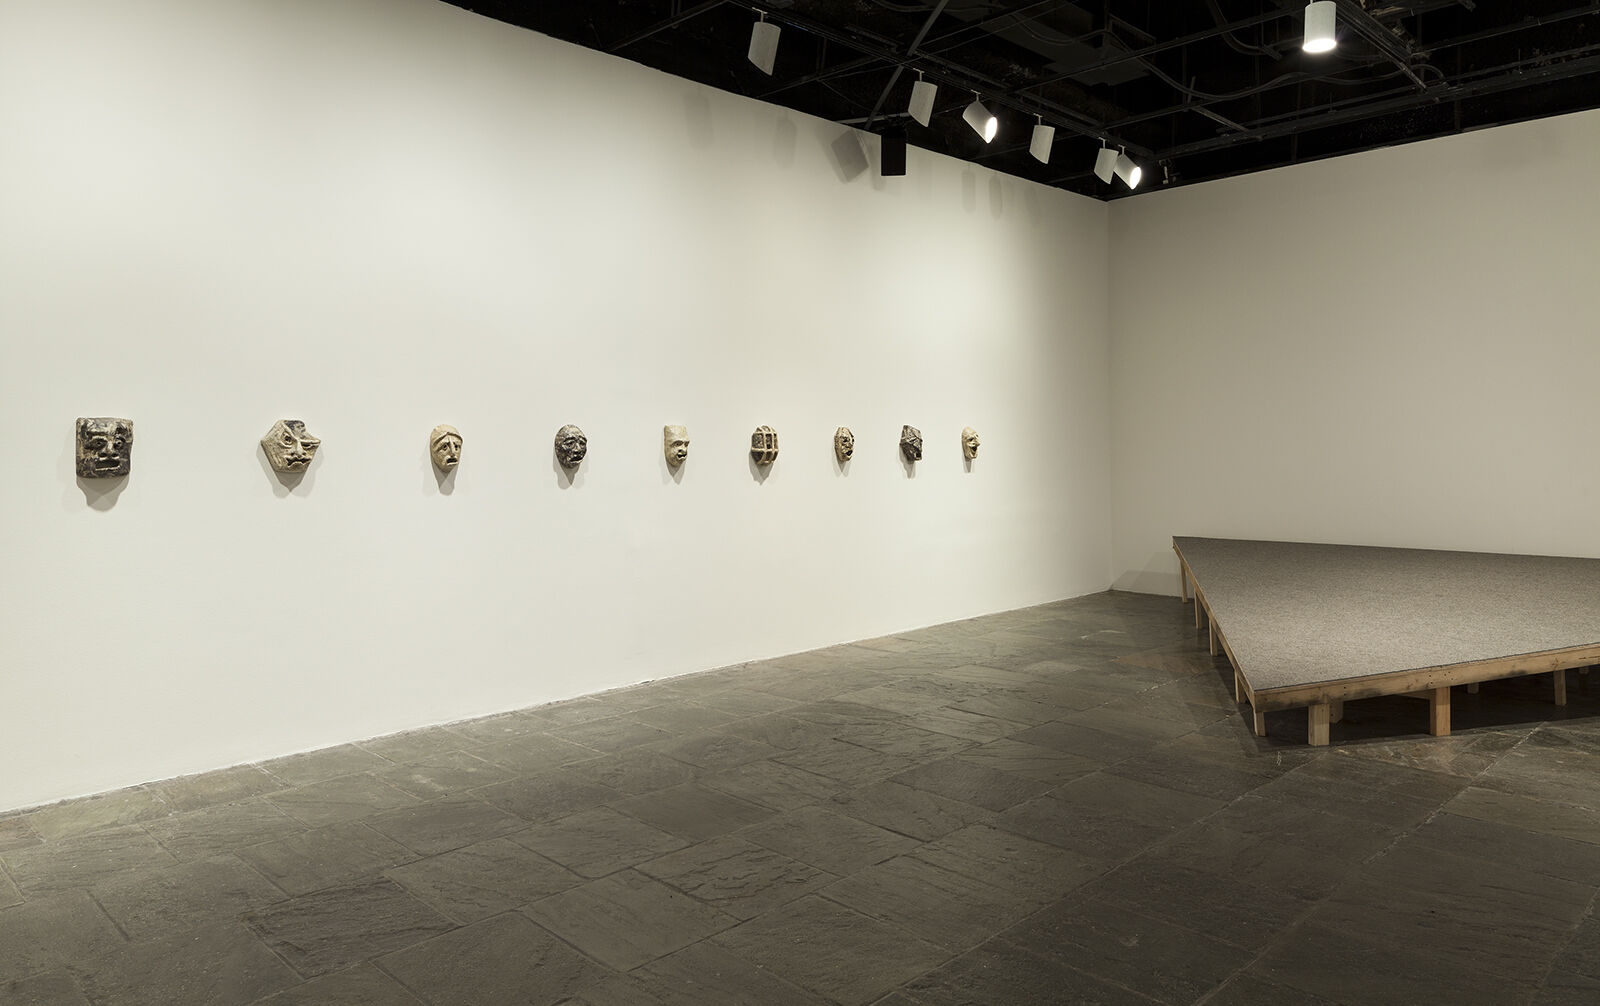 A gallery with masks displayed in a line across a wall.